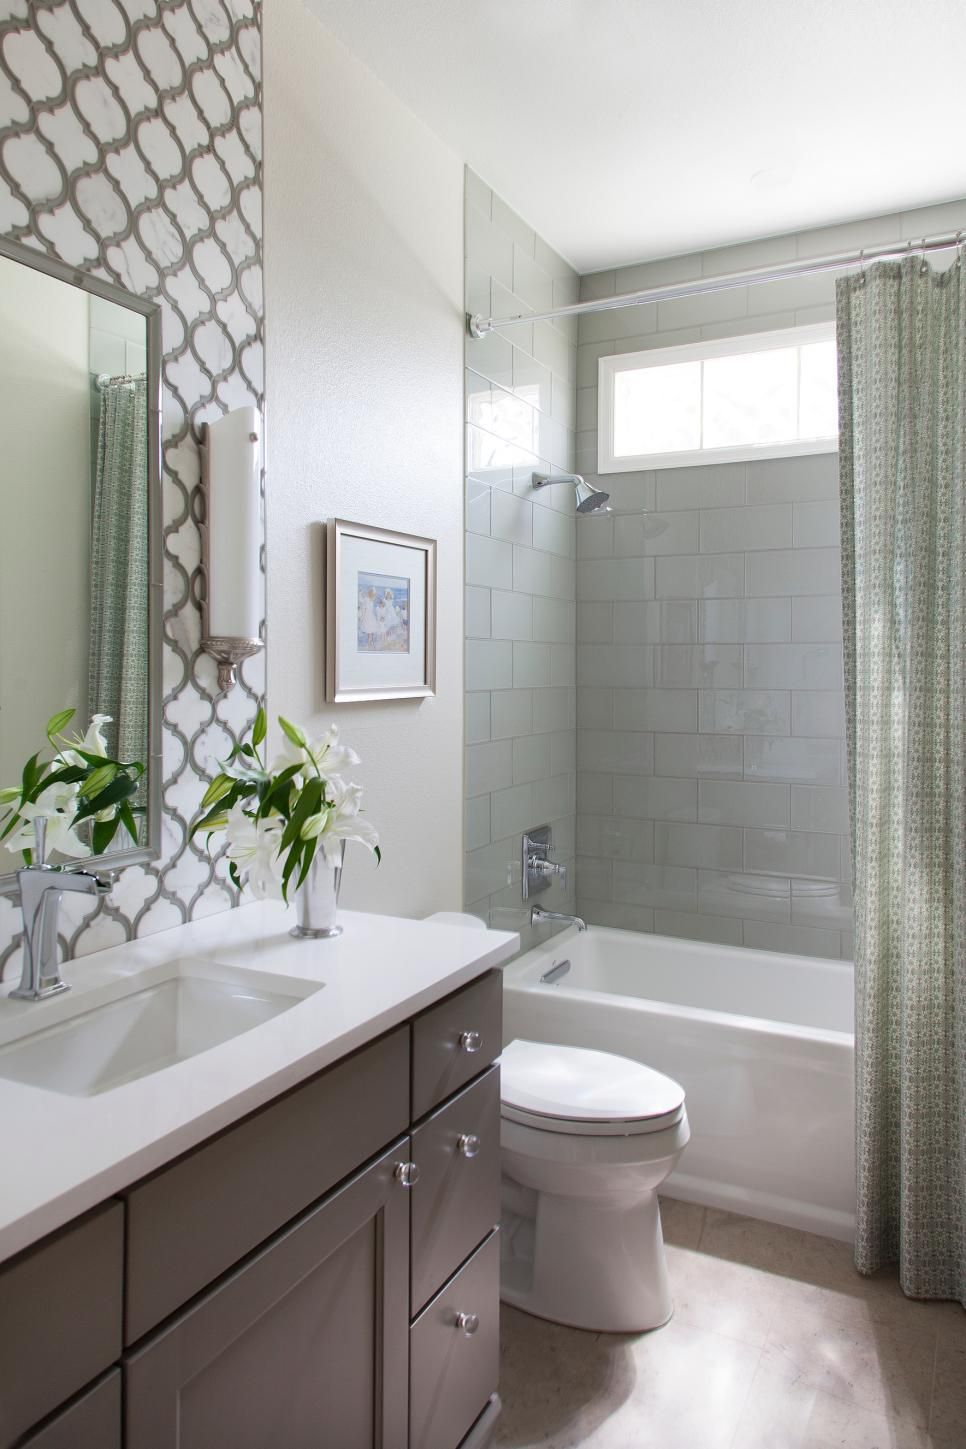 Guest Bathroom Ideas This Small Guest Bathroom Packs In A Lot Of Style With A Fully